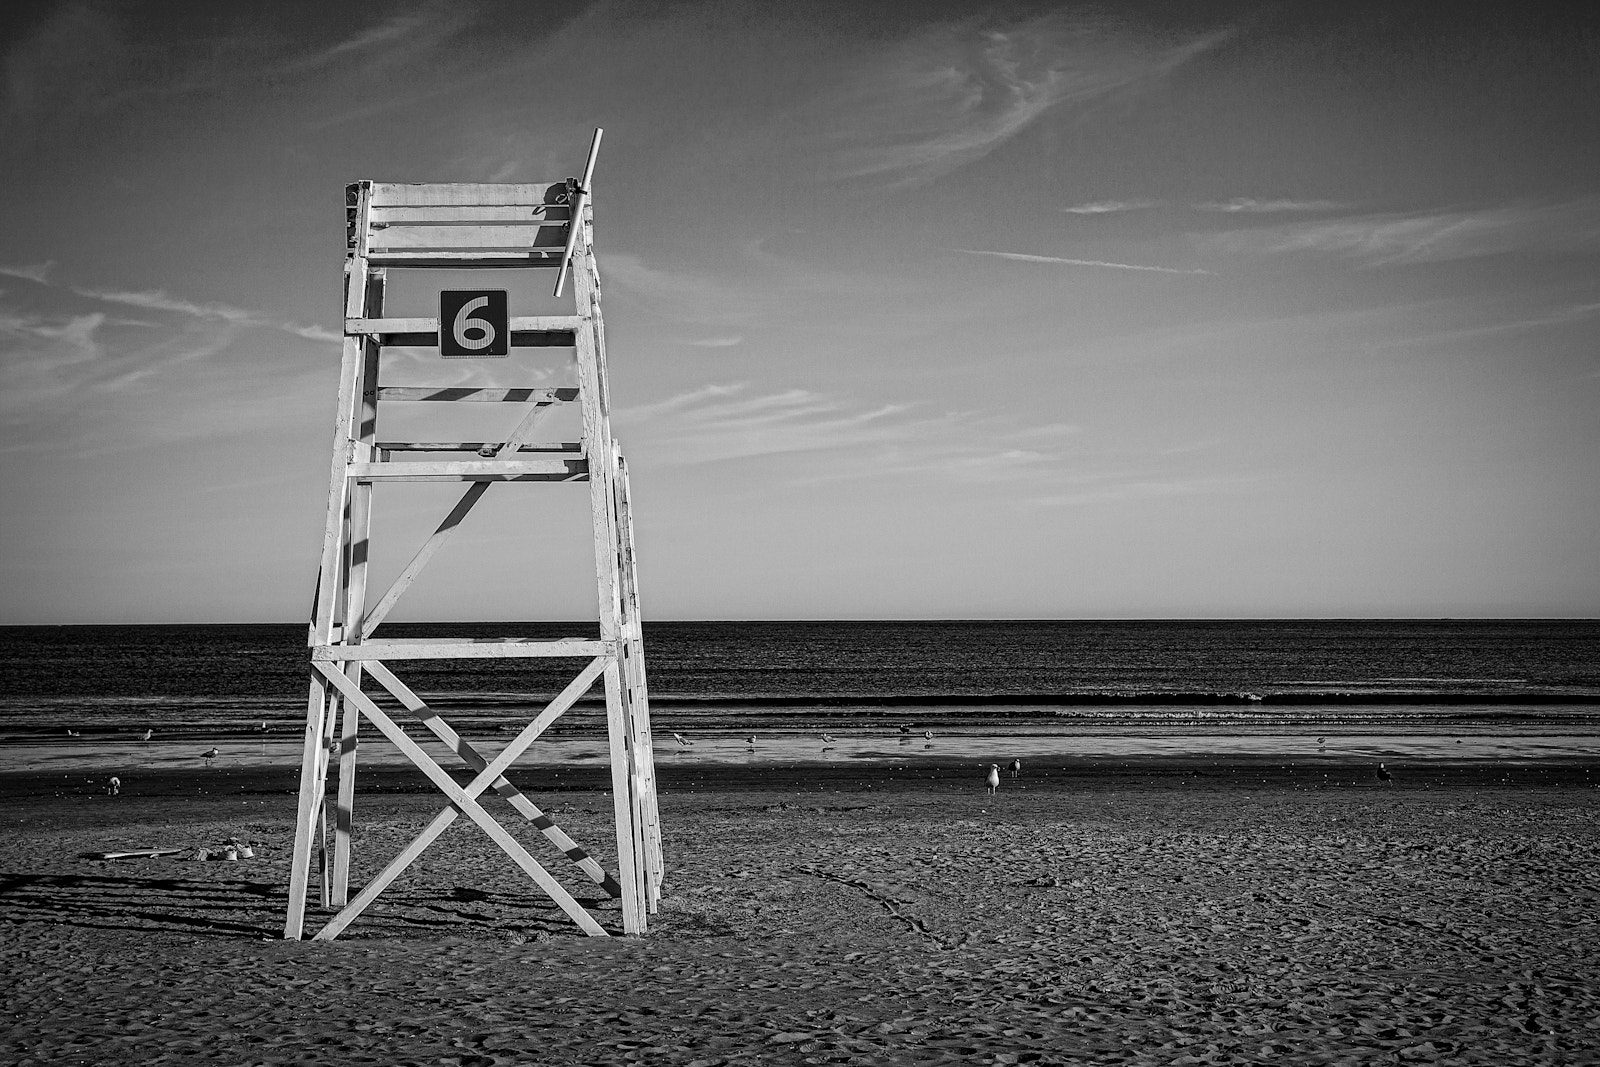 Photograph Lifeguard Station 6 by Cindy Costa on 500px